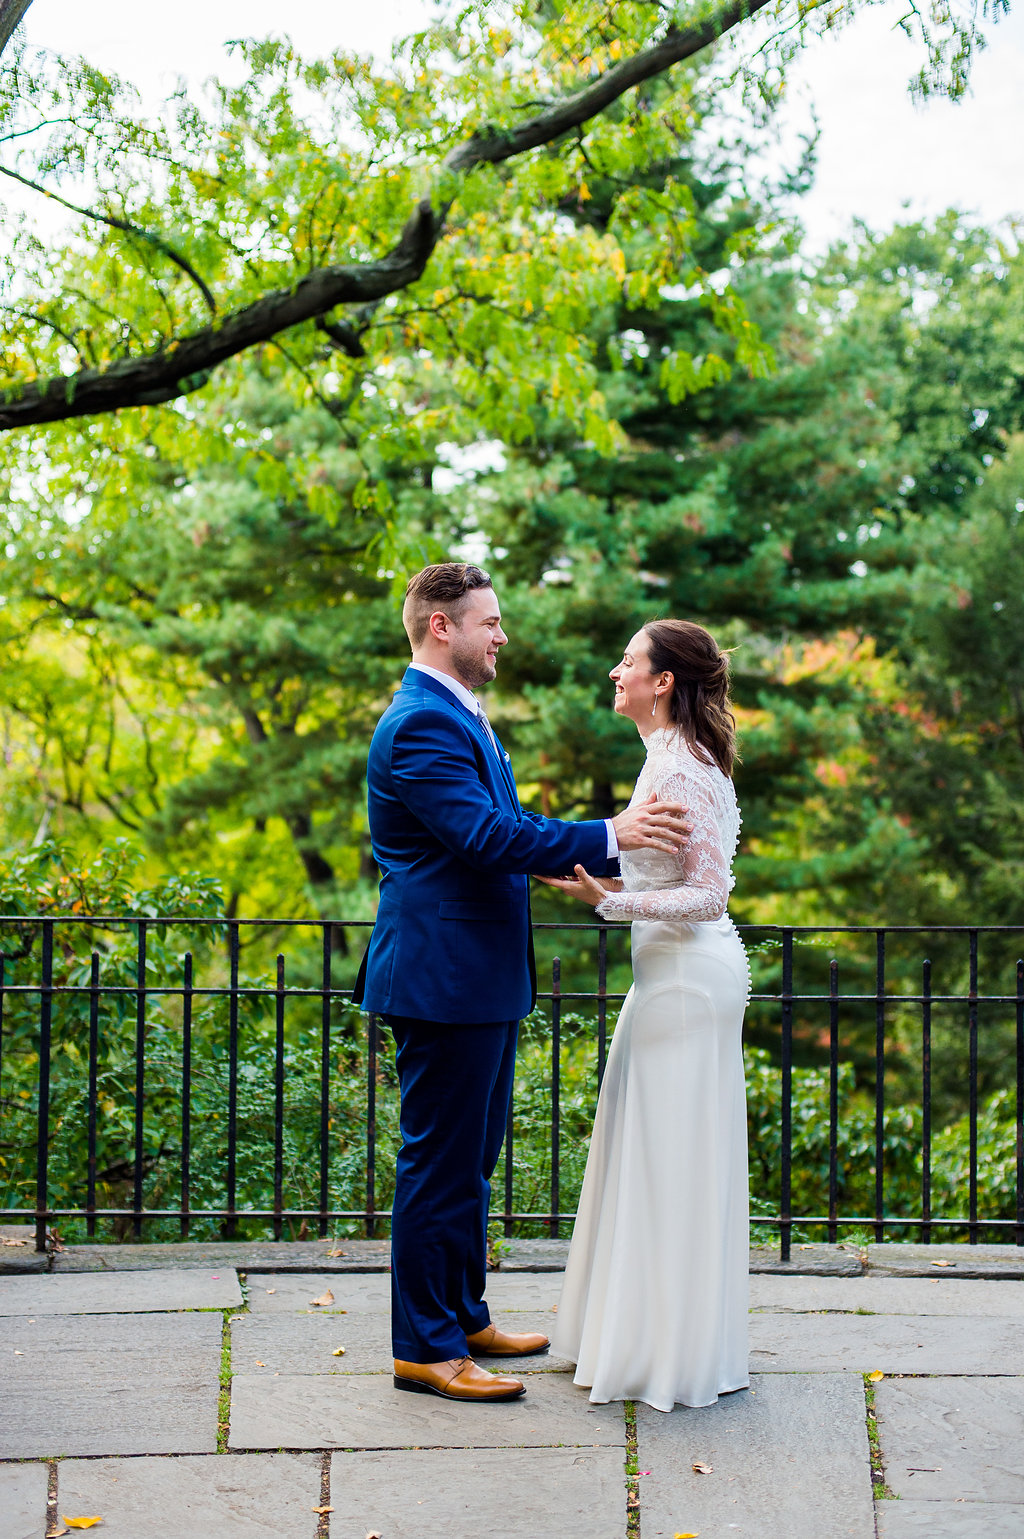 Central Park weddings are beautiful.